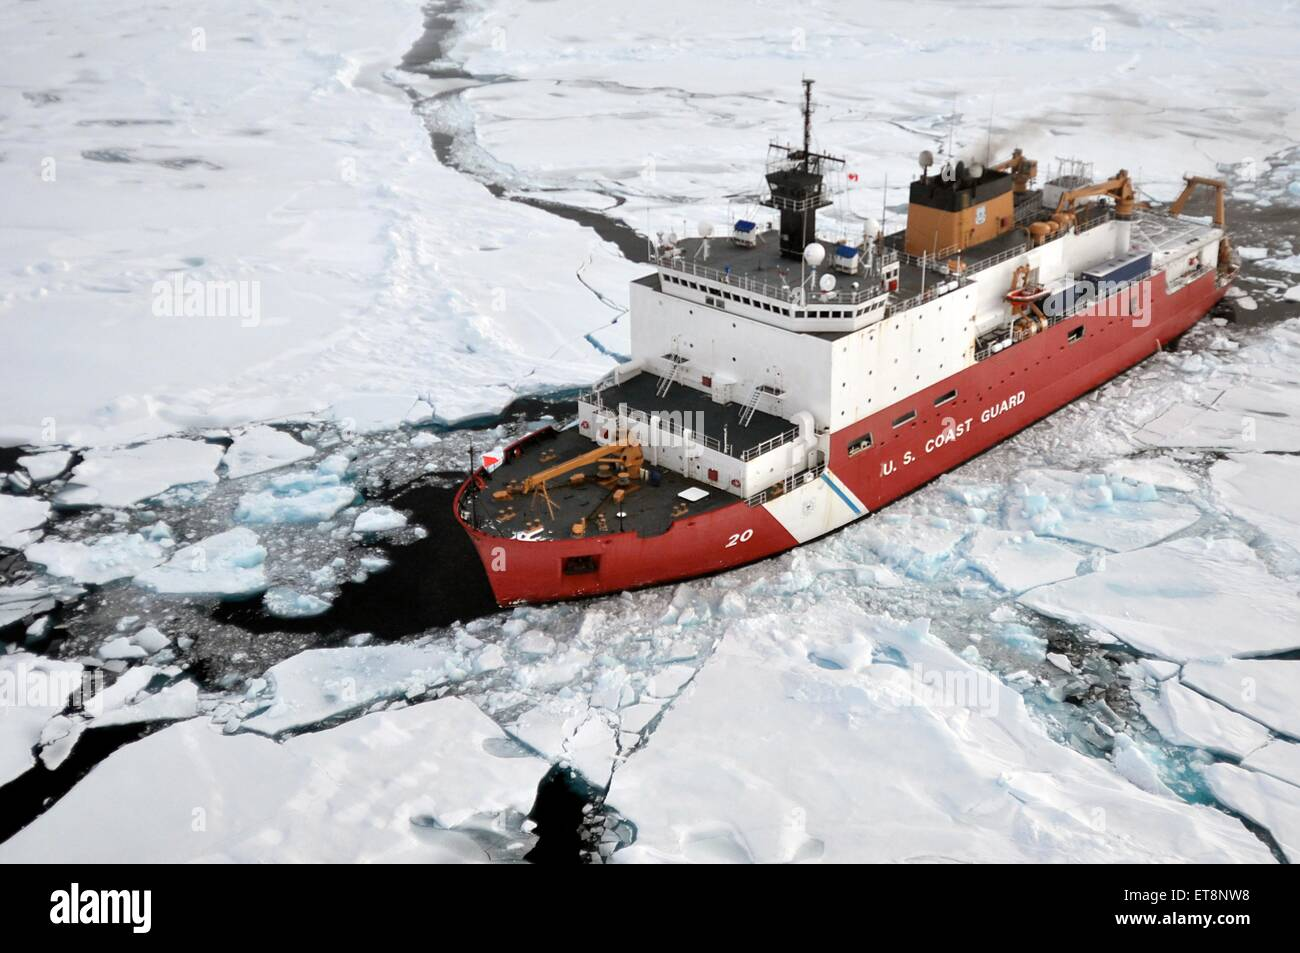 US Coast Guard Cutter Healy breaks ice August 31, 2009 in the Arctic. The Healy is the newest and most technologically - Stock Image